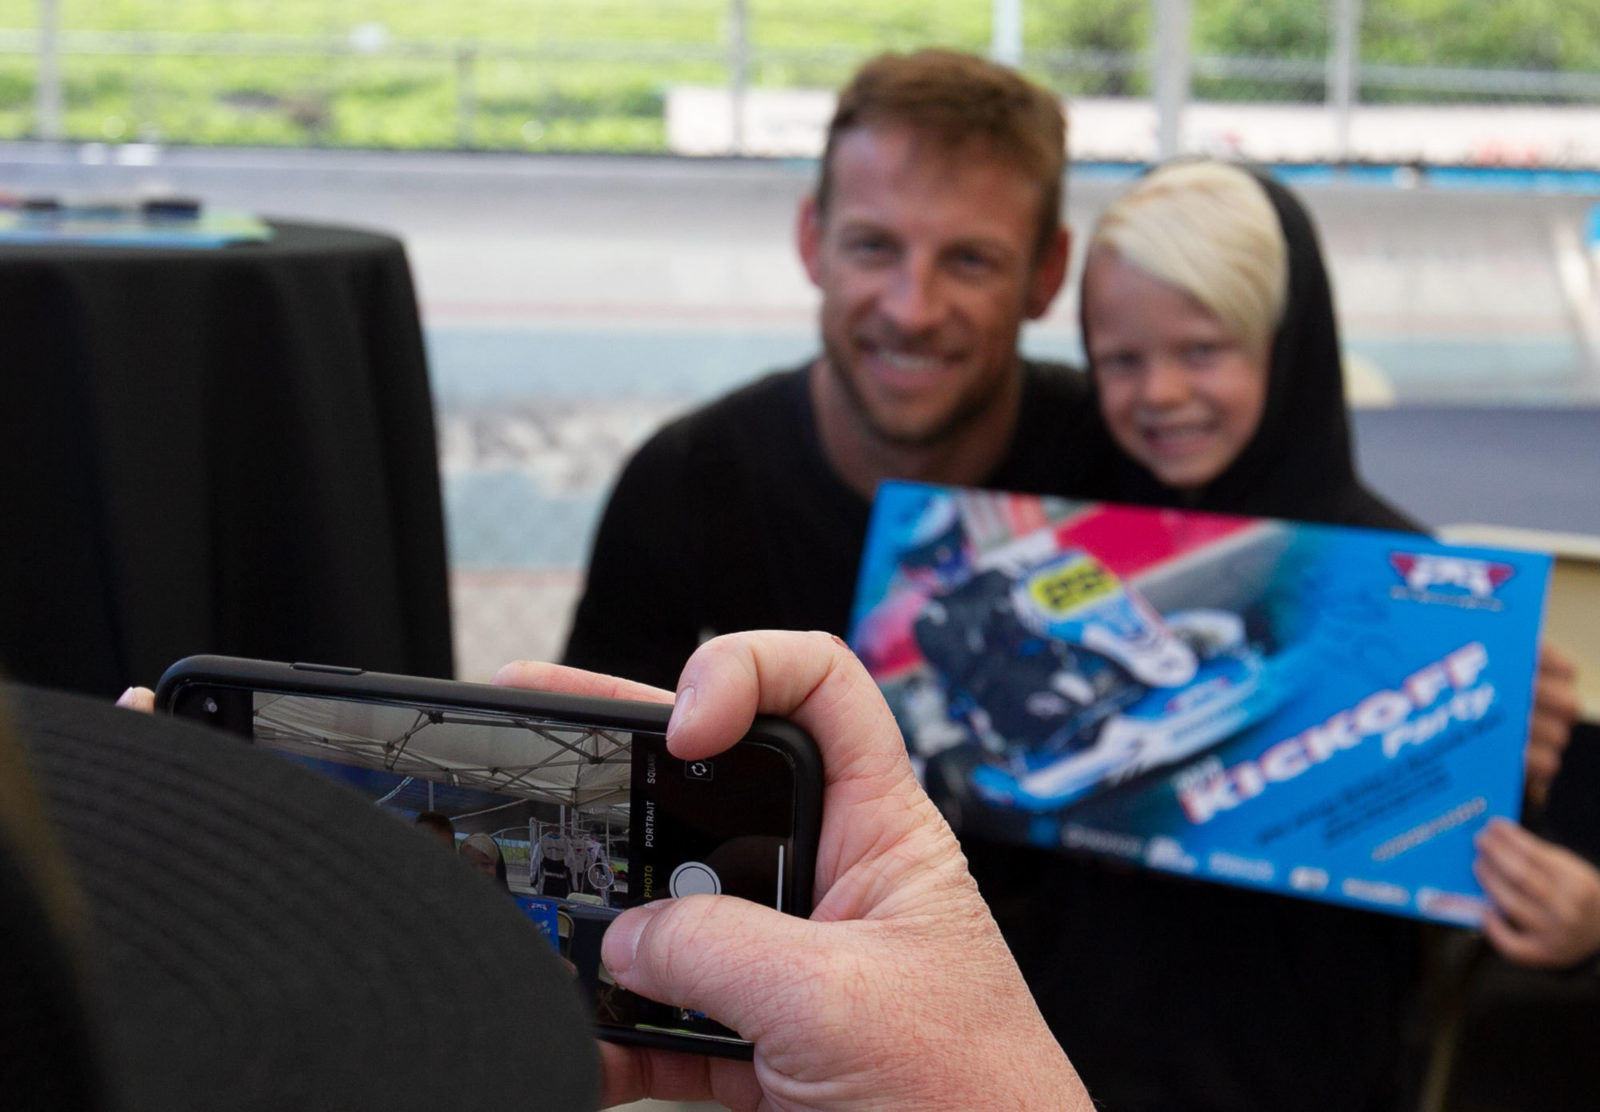 Jenson poses for a photo with a young fan at Adams Motorsports Park in Riverside, California.